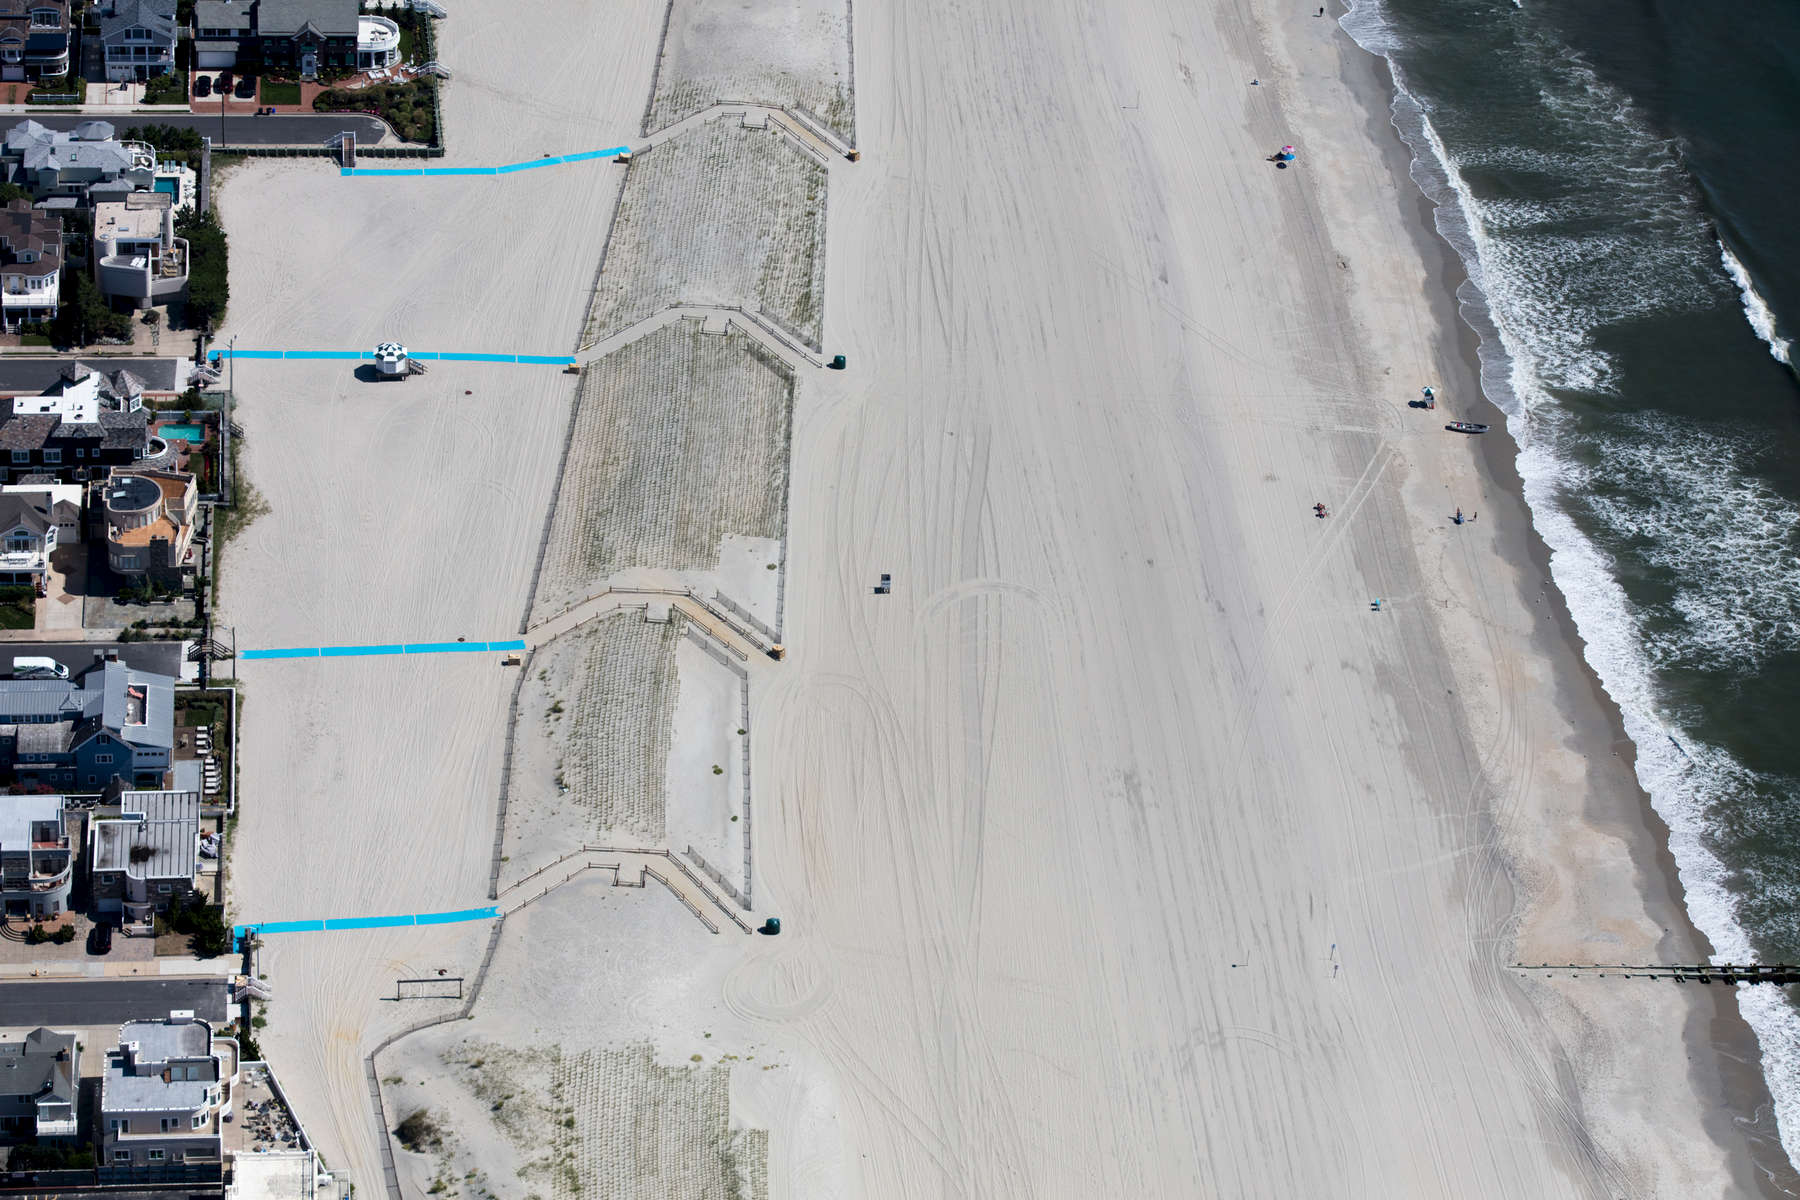 Artificial Dune Protection and Blue Walks, Margate City, New Jersey 2018 (180904-0467)